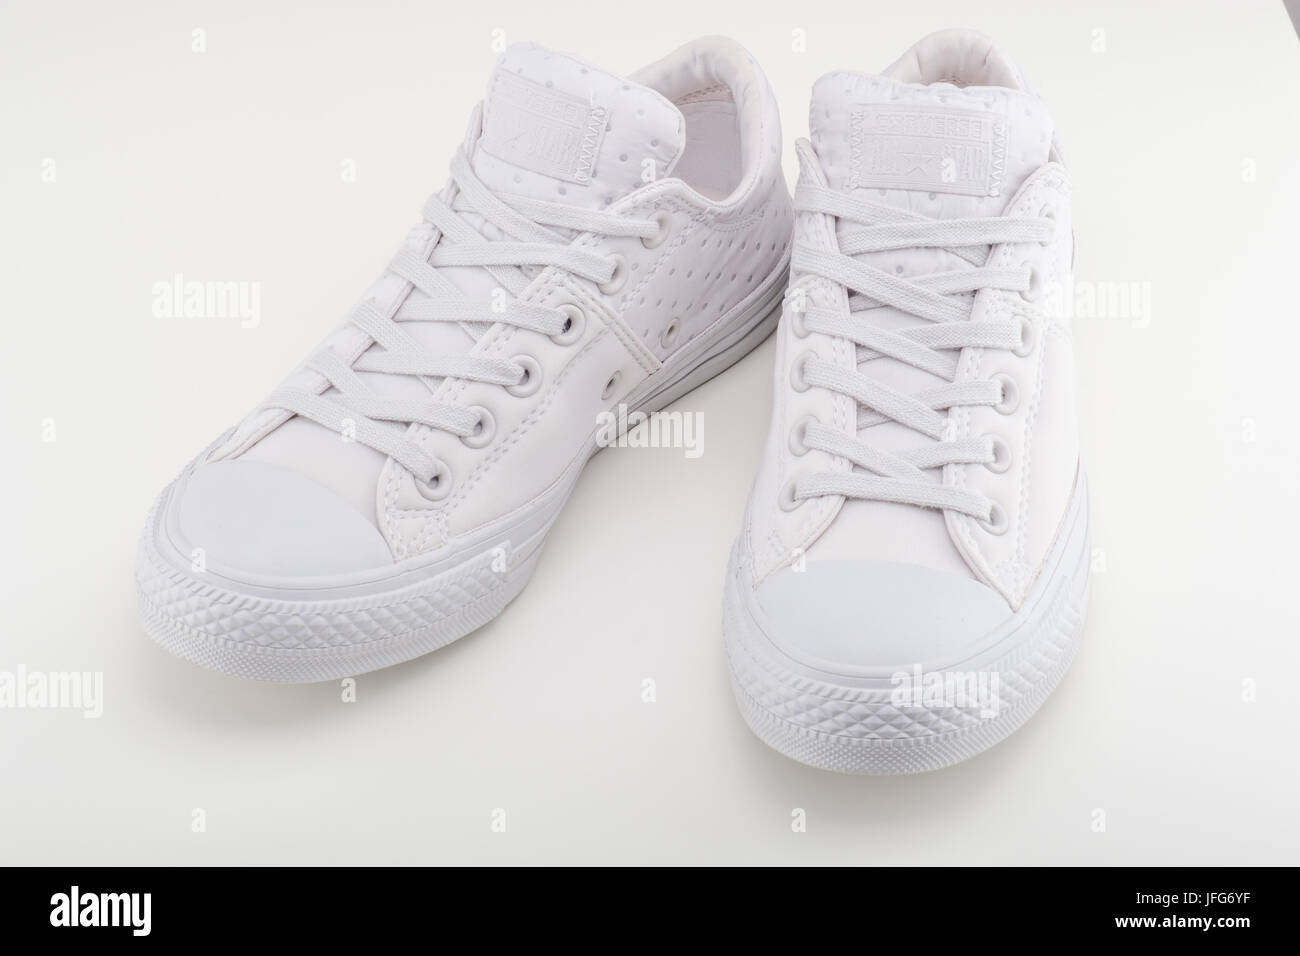 f3b991520712 All Star Shoes Stock Photos   All Star Shoes Stock Images - Alamy